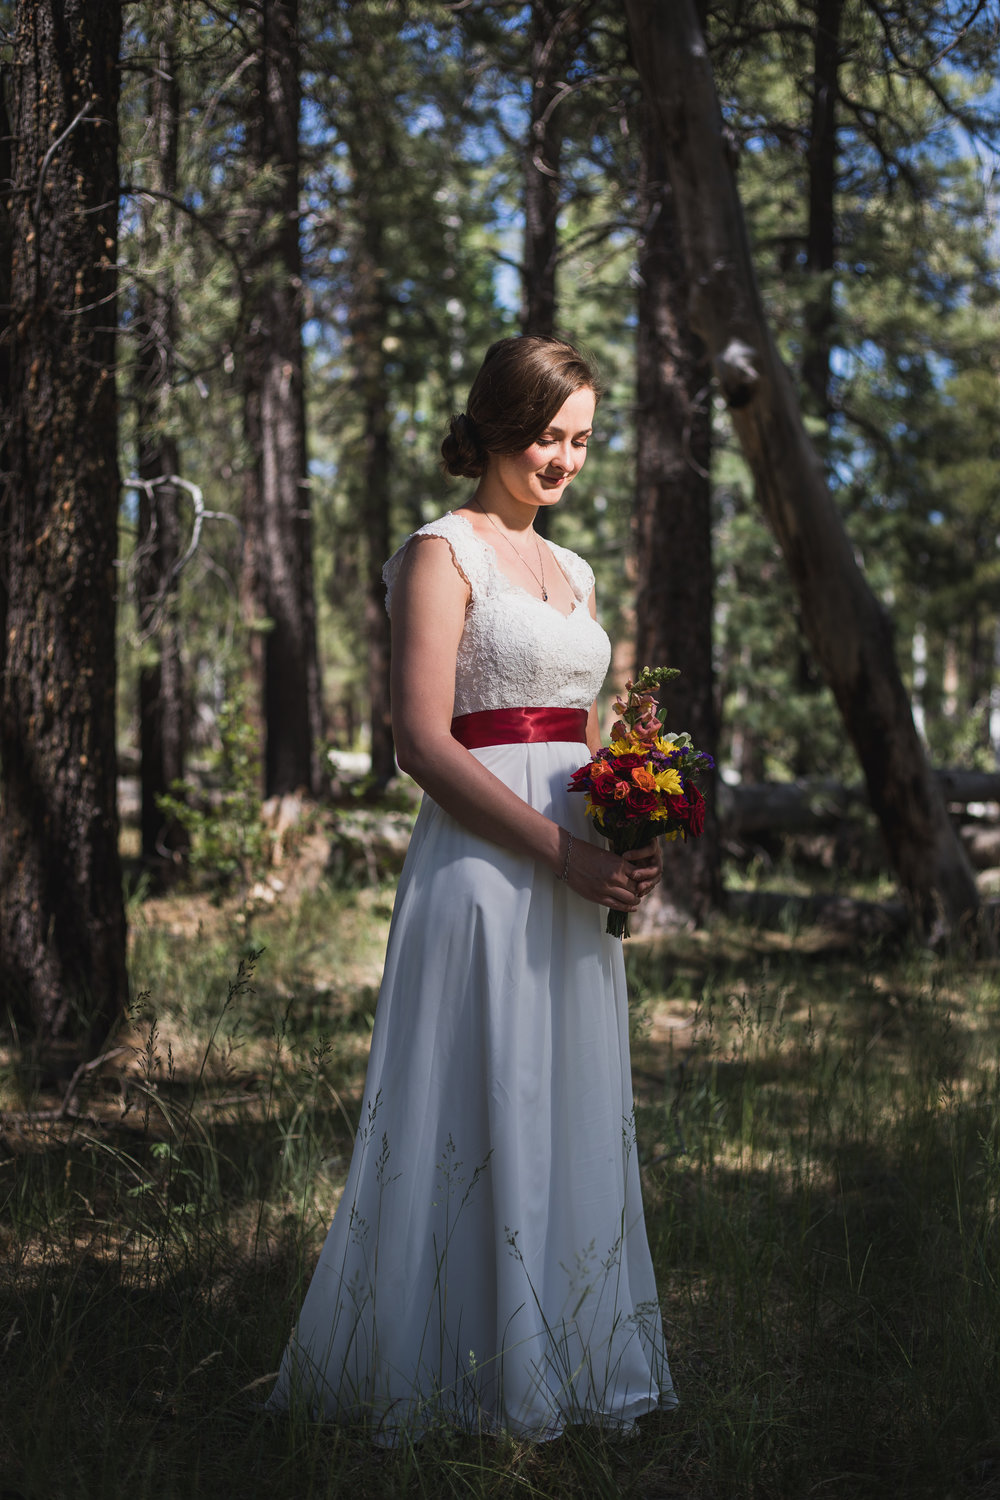 flagstaff-nordic-center-wedding-6.jpg